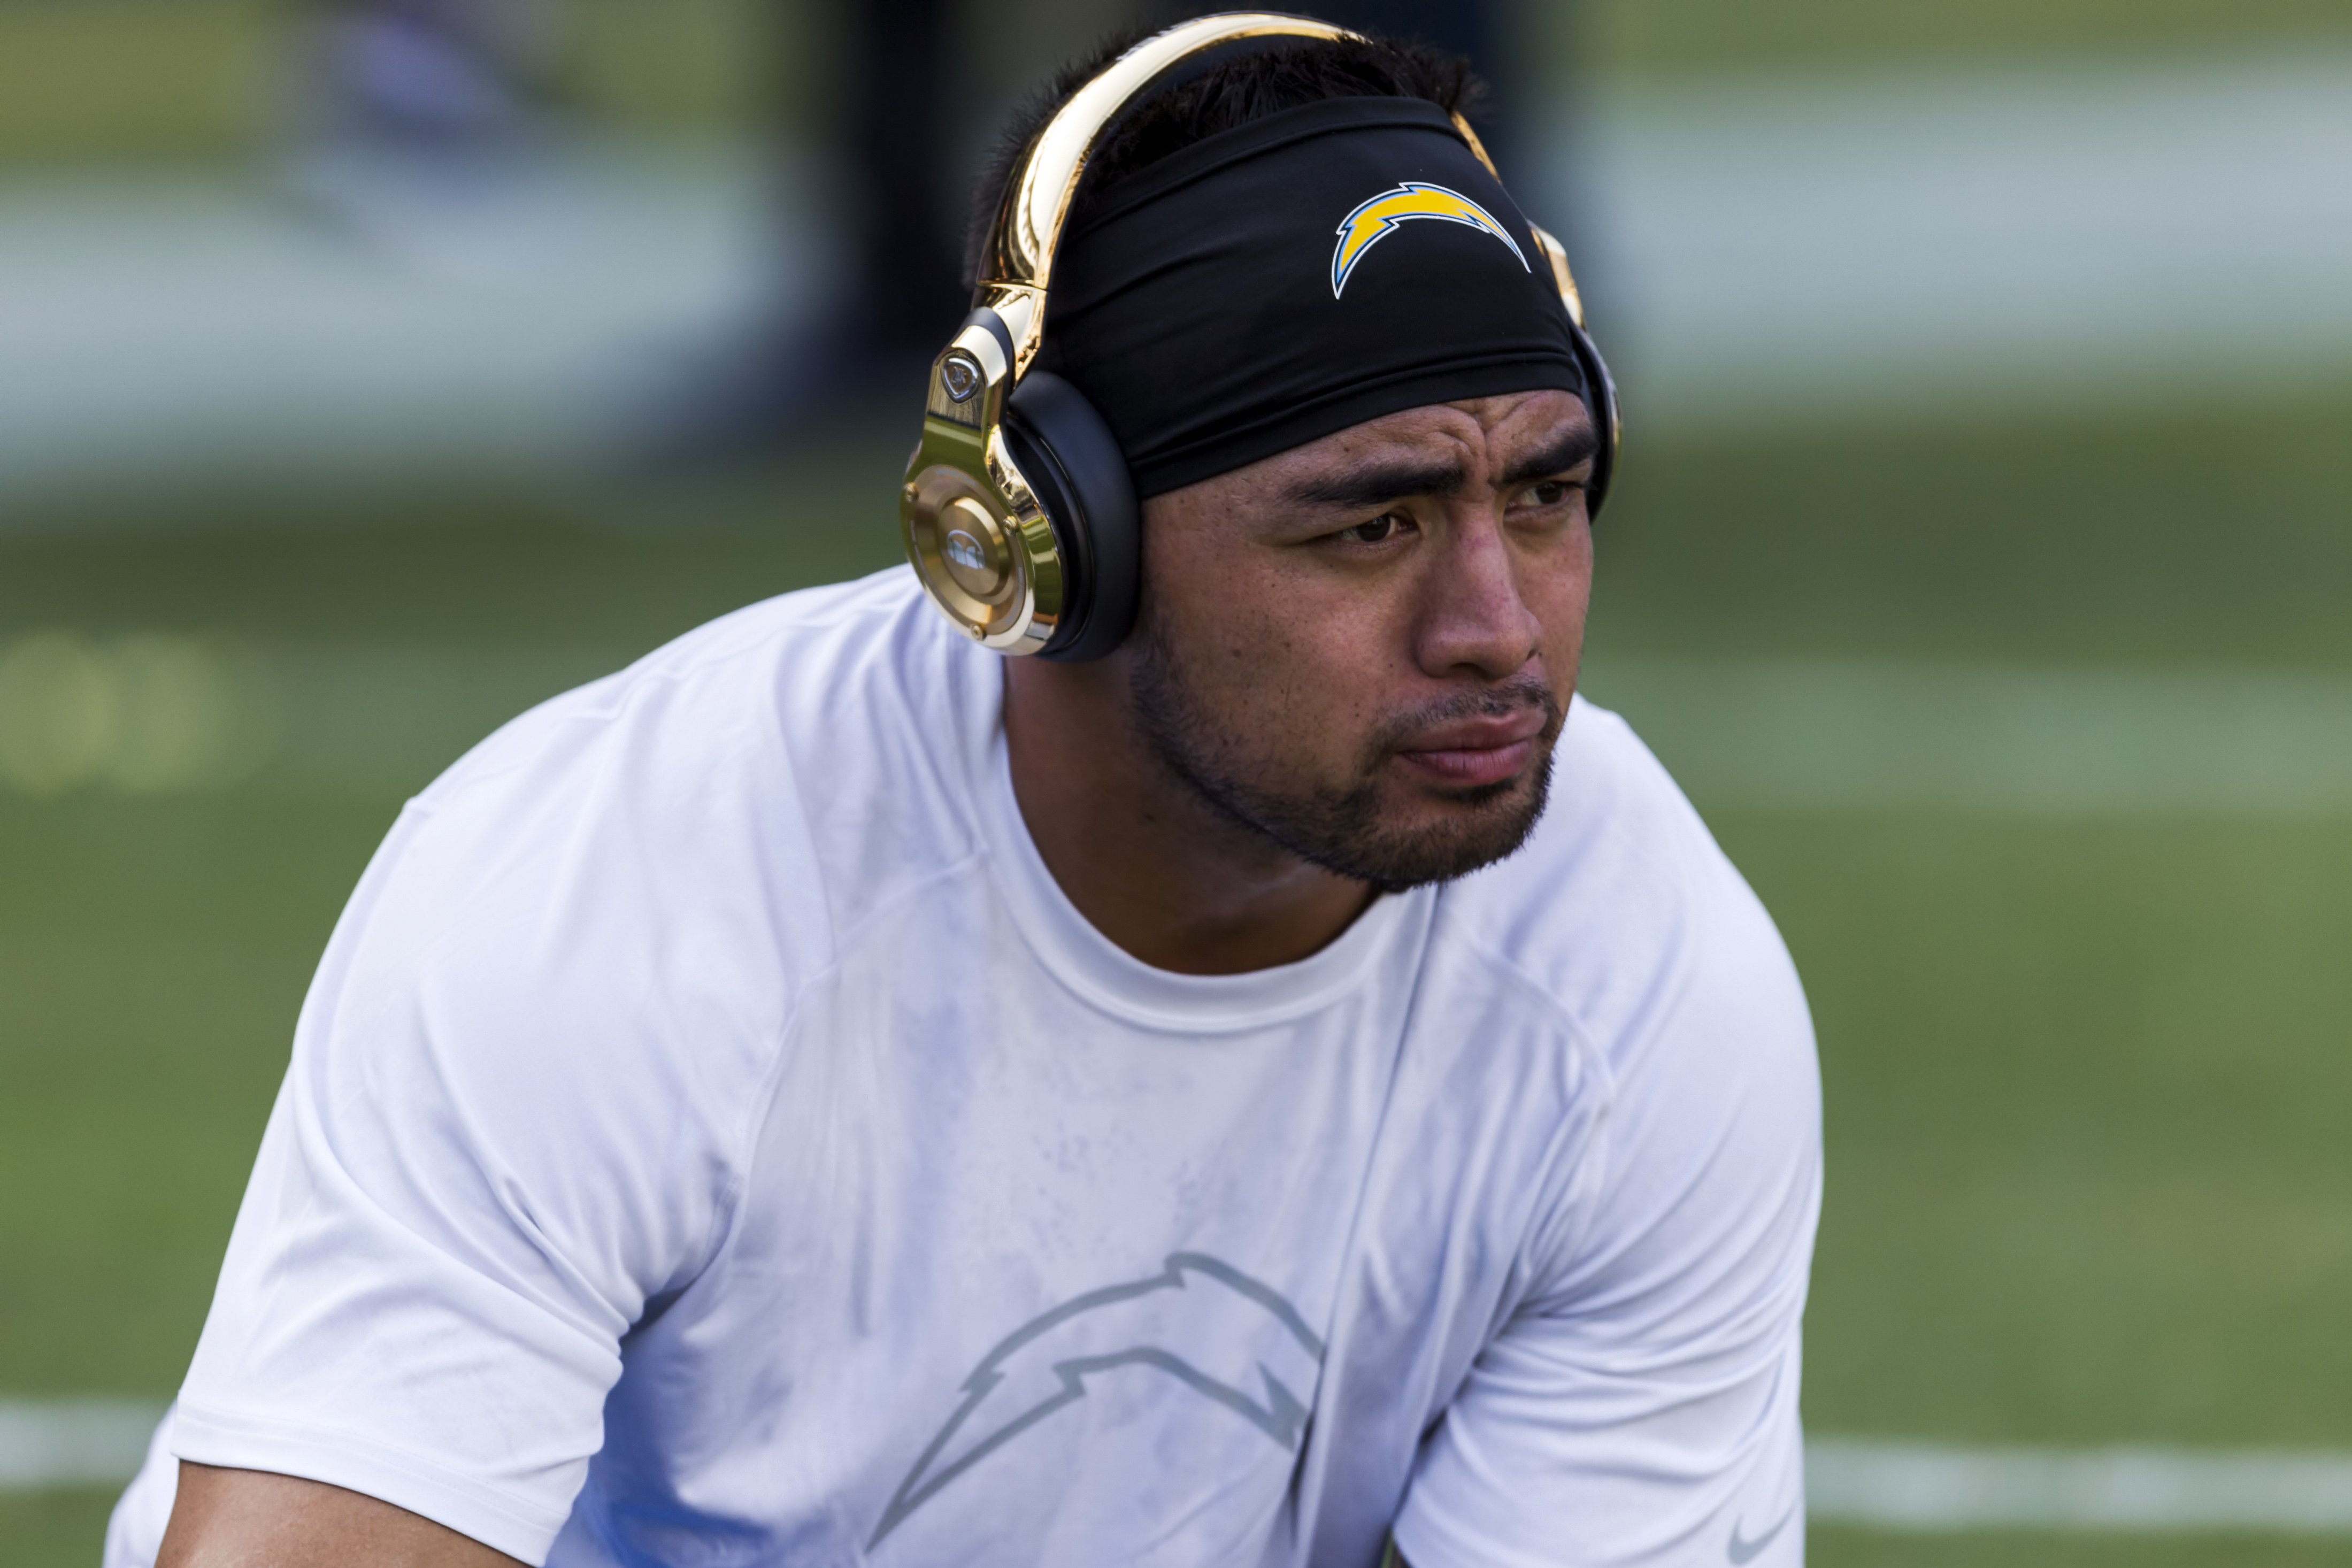 San Diego Chargers inside linebacker Manti Te'o stretches before the first preseason game between the Dallas Cowboys and the San Diego Chargers at Qualcomm. Photo by Bill Reilly